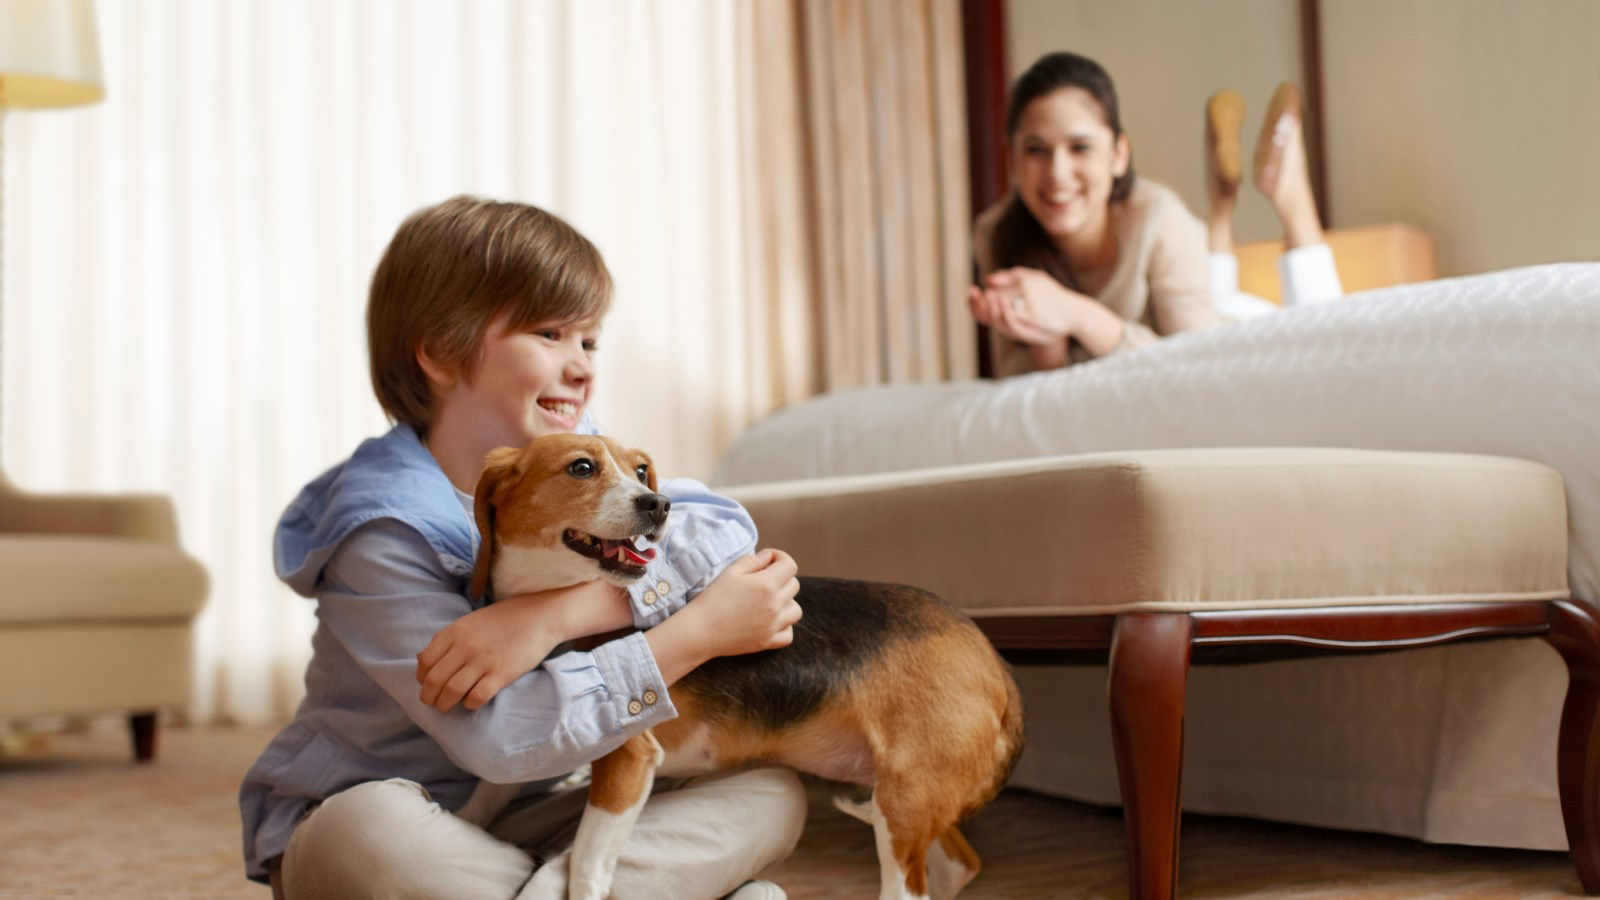 Sheraton Minneapolis West Hotel - Lake Minnetonka Pet Friendly Hotel